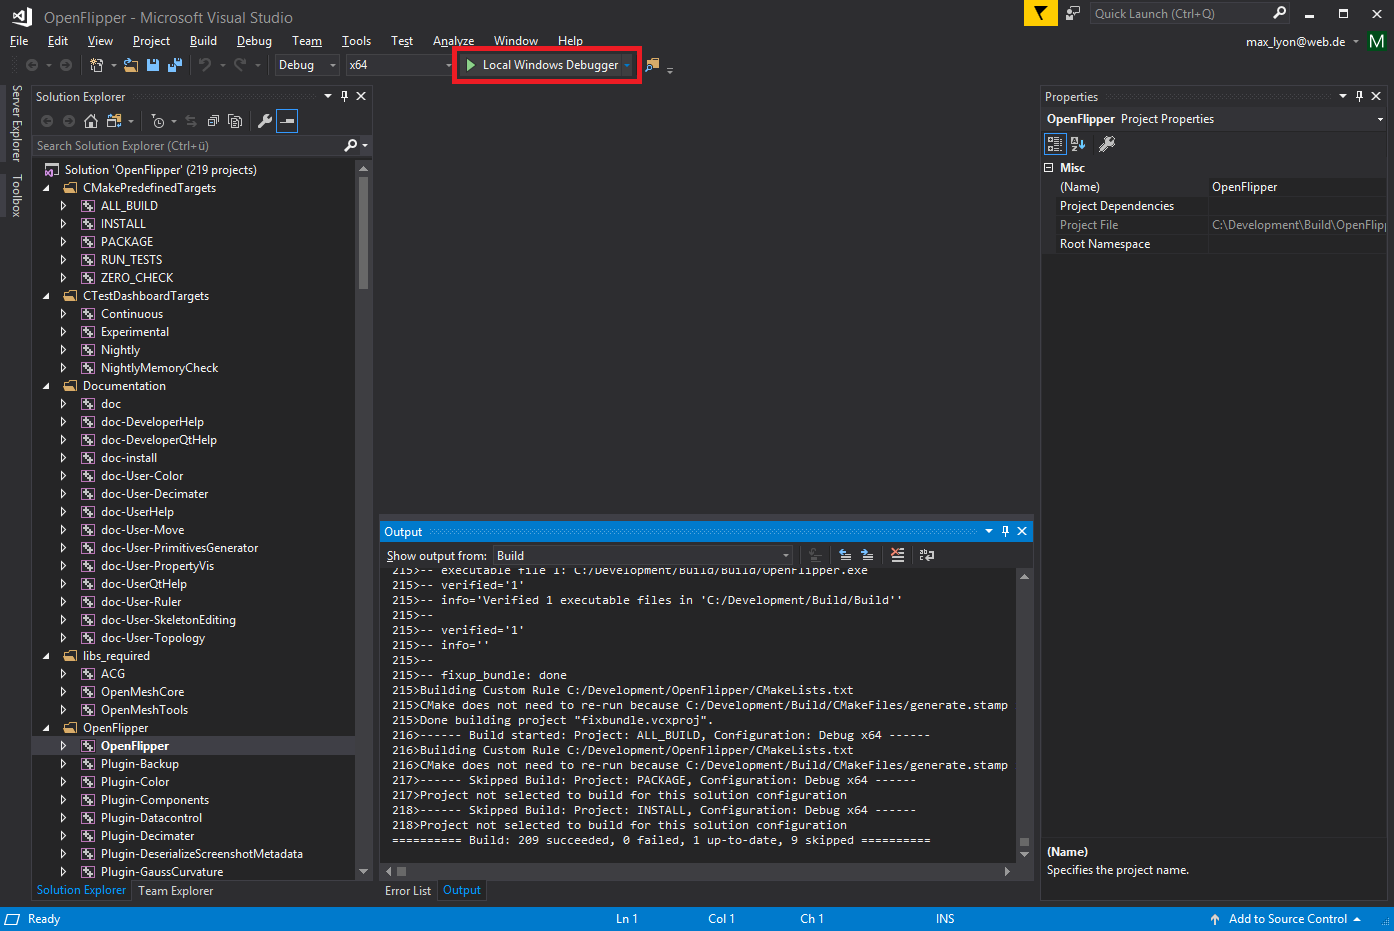 Documentation/DeveloperHelpSources/building-screenshots/17_local_windows_debugger.png